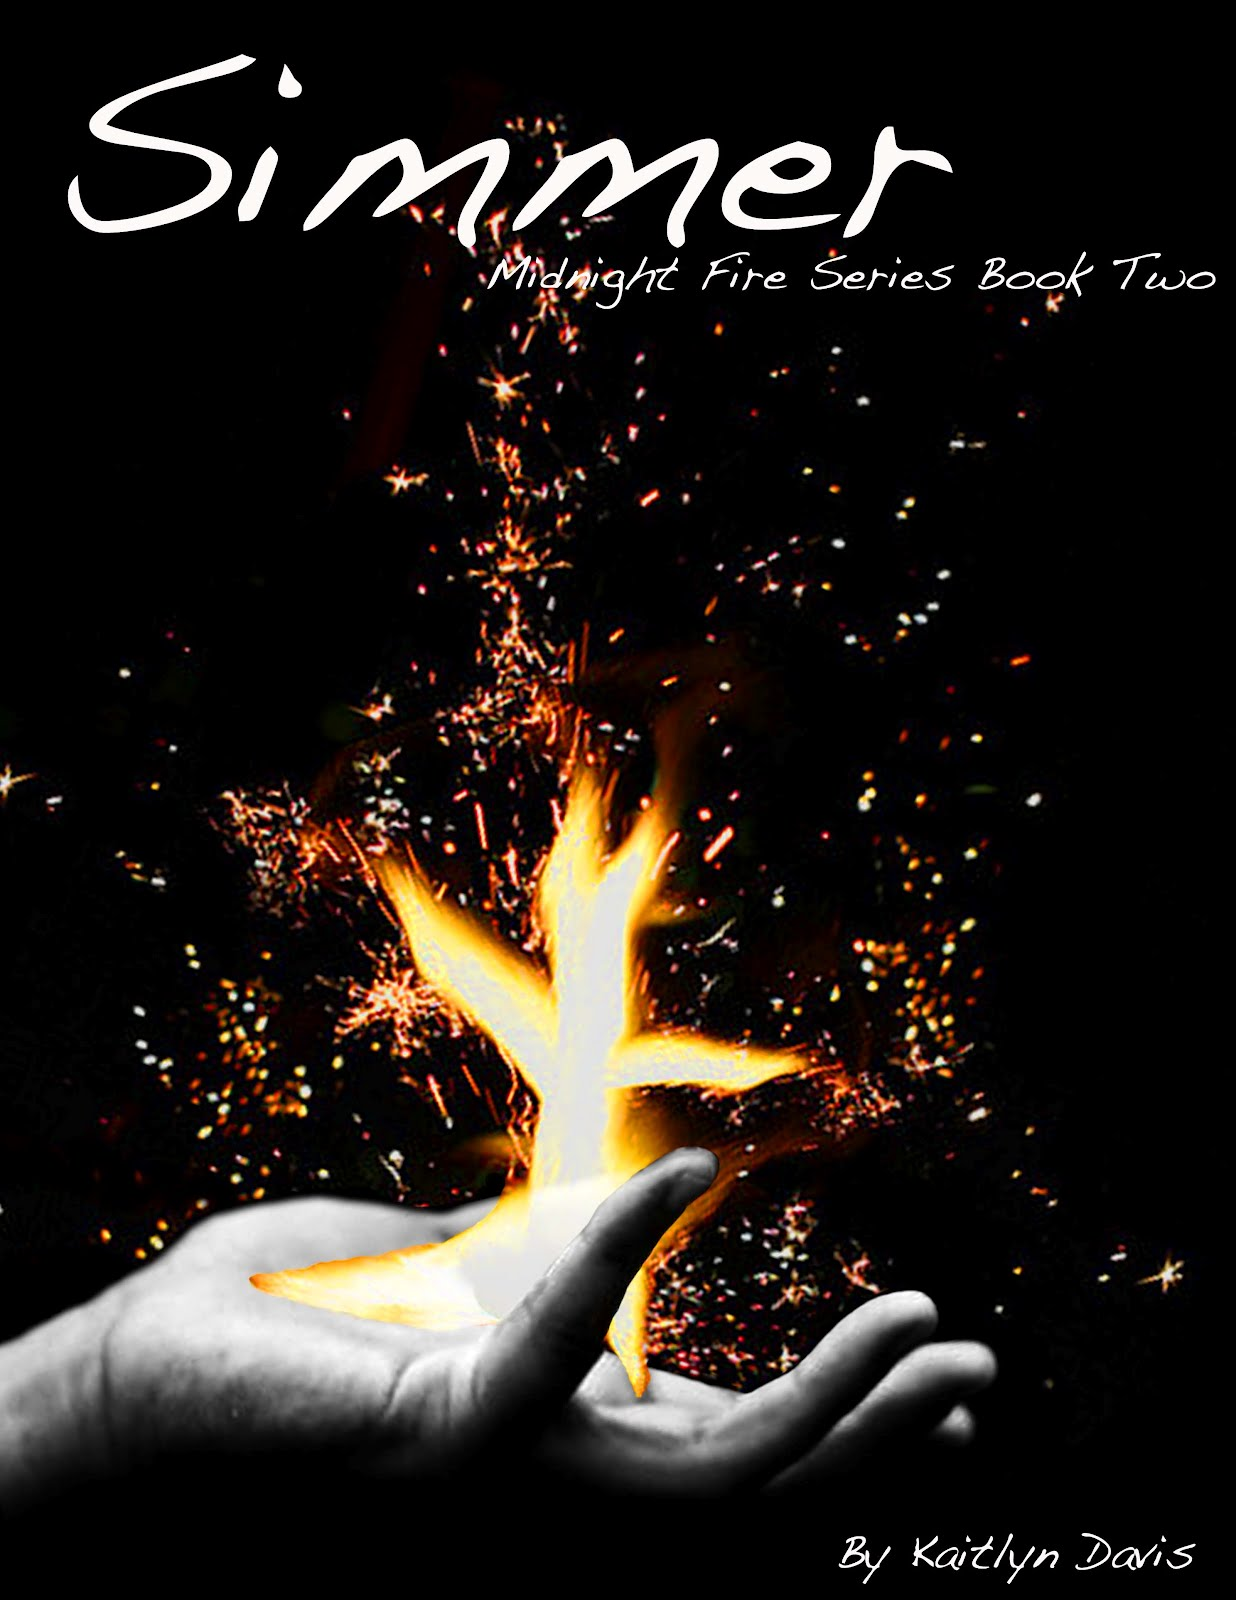 vvb32 reads: Ignite and Simmer by Kaitlyn Davis